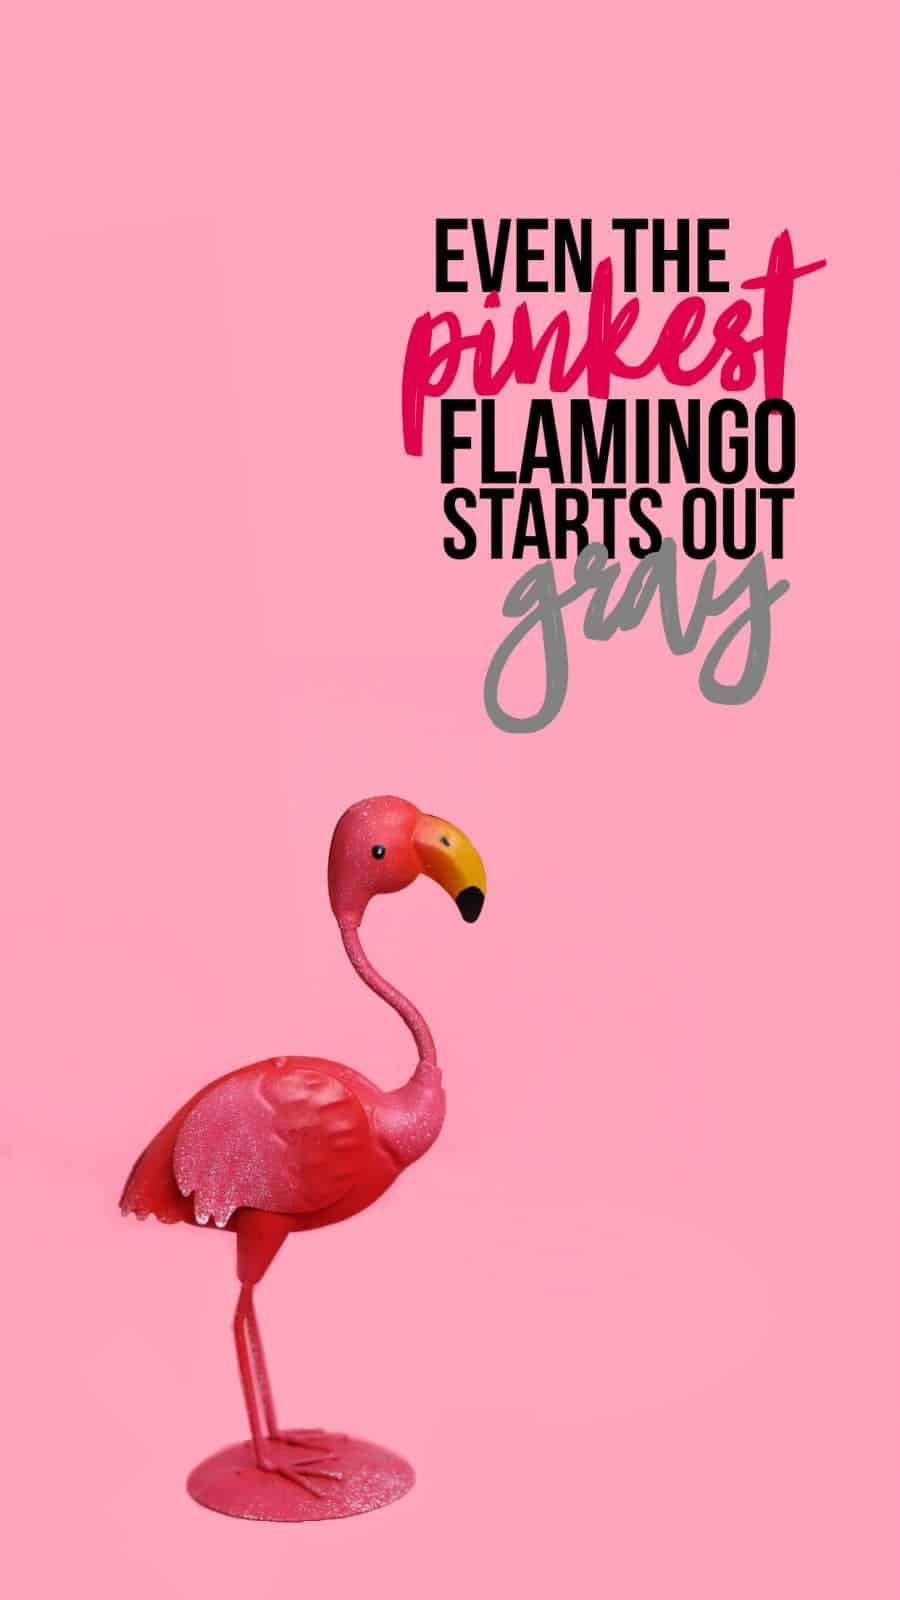 Make My Own Quote Wallpaper Flamingo Wallpaper For Your Phone A Girl And A Glue Gun